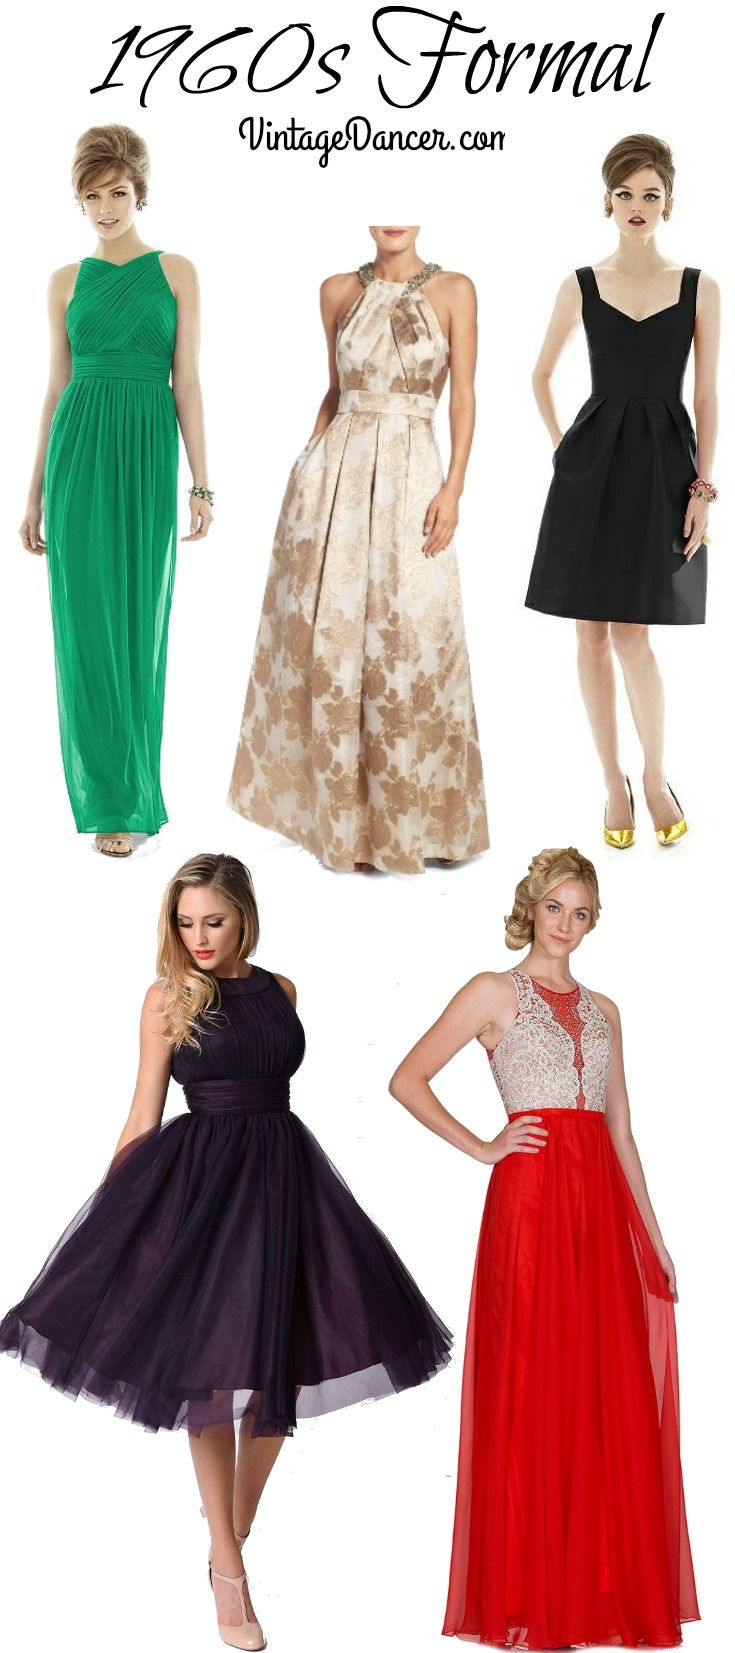 1960s Style Cocktail Prom Formal Dresses Formal Dresses 1960s Fashion Women 60s Fashion Dresses [ 1653 x 735 Pixel ]